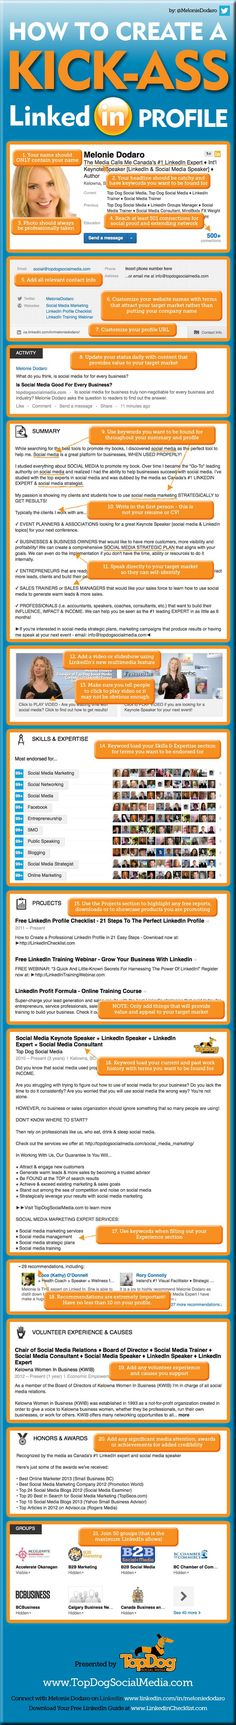 How to Create a Kick-ass LinkedIn Profile